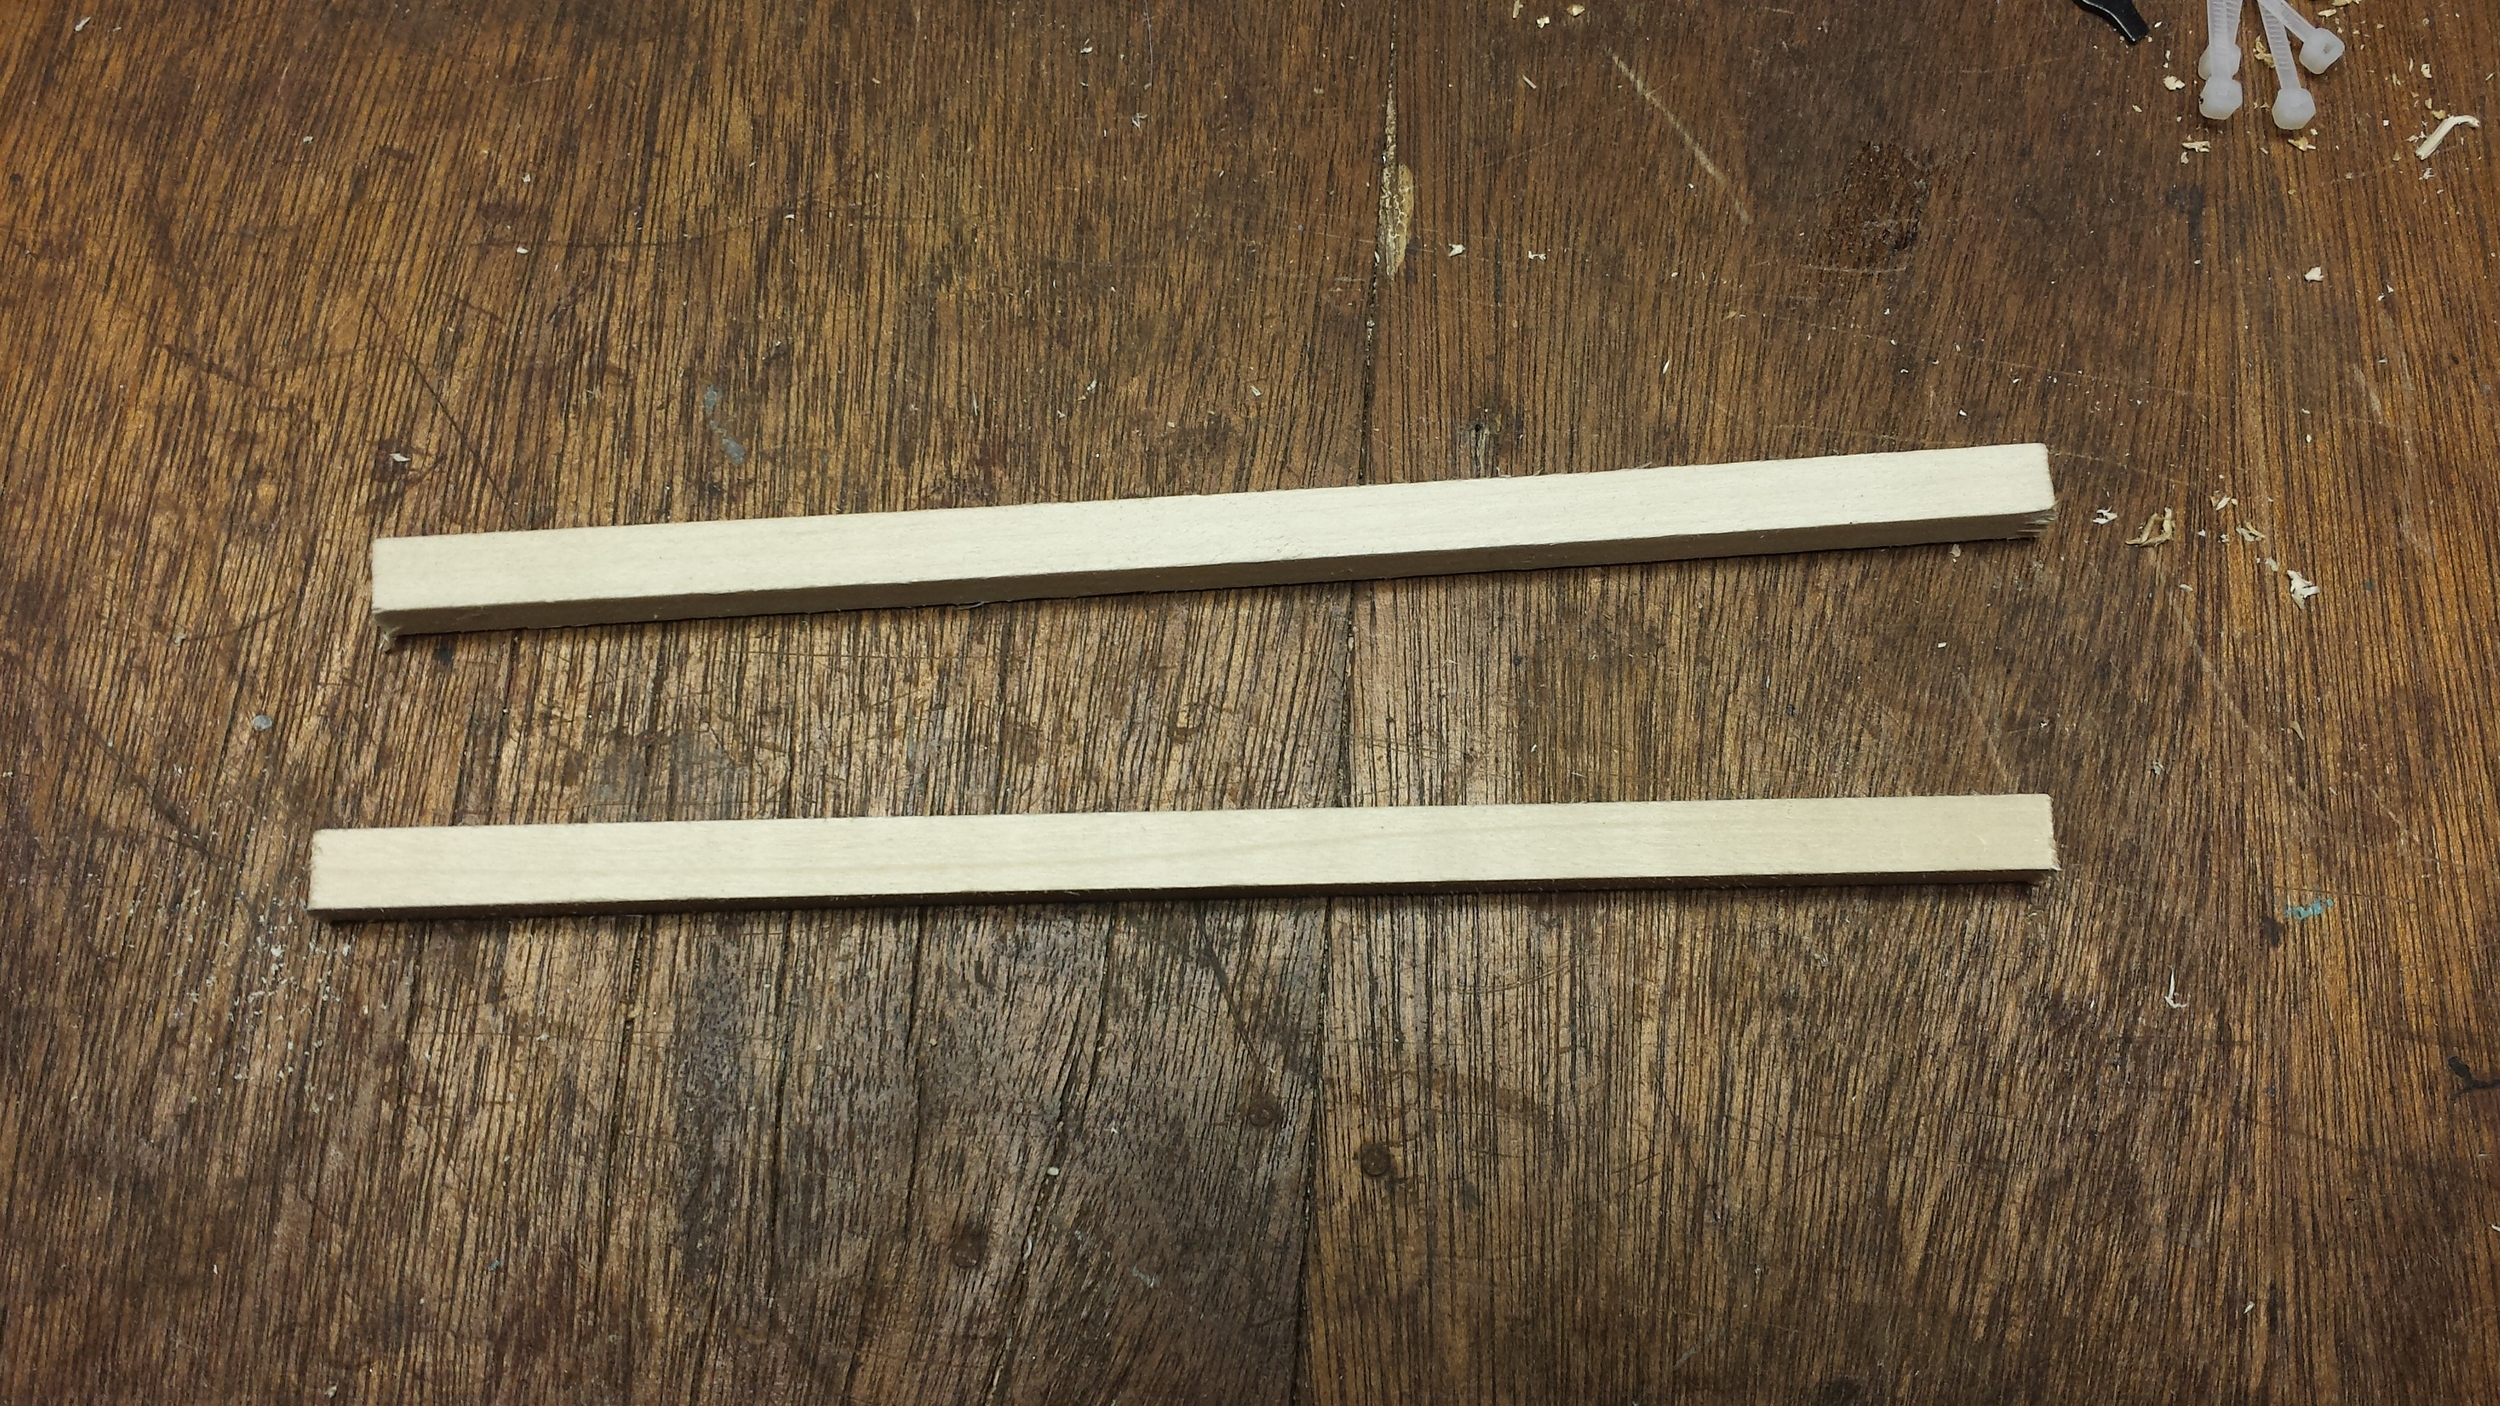 "Two 9.5"" Pieces of 3/8"" Square Dowel"